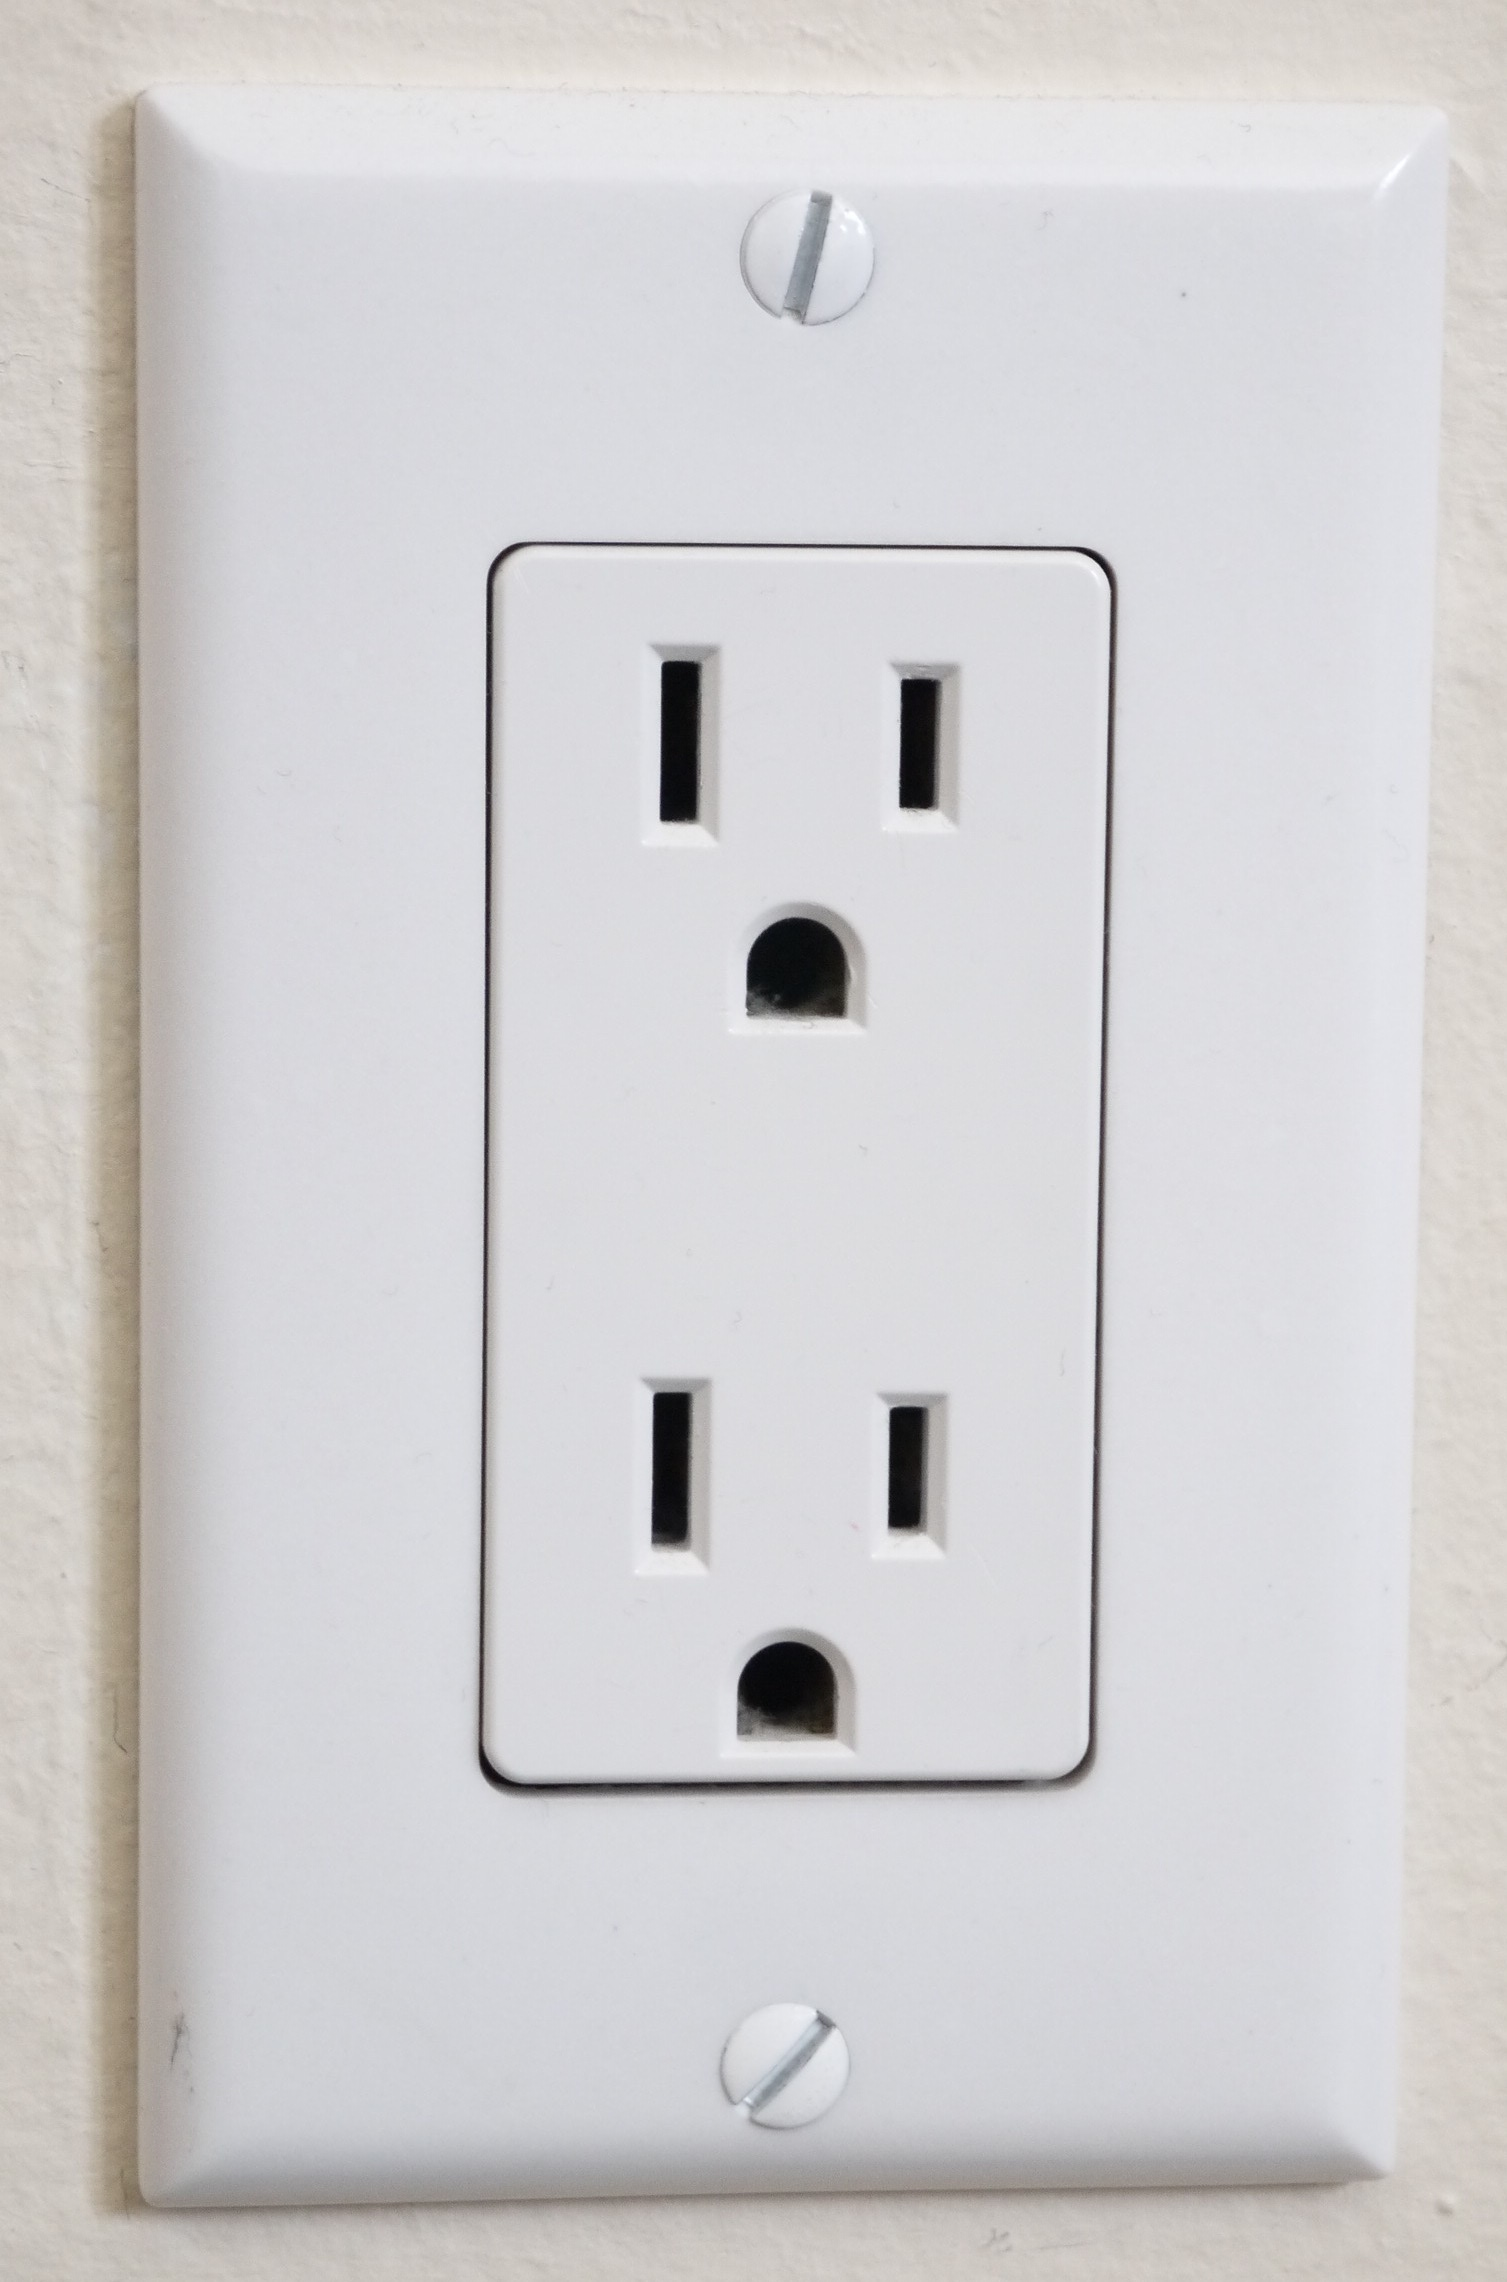 Electrical Wiring Diagrams For Outlets Electrical Outlets